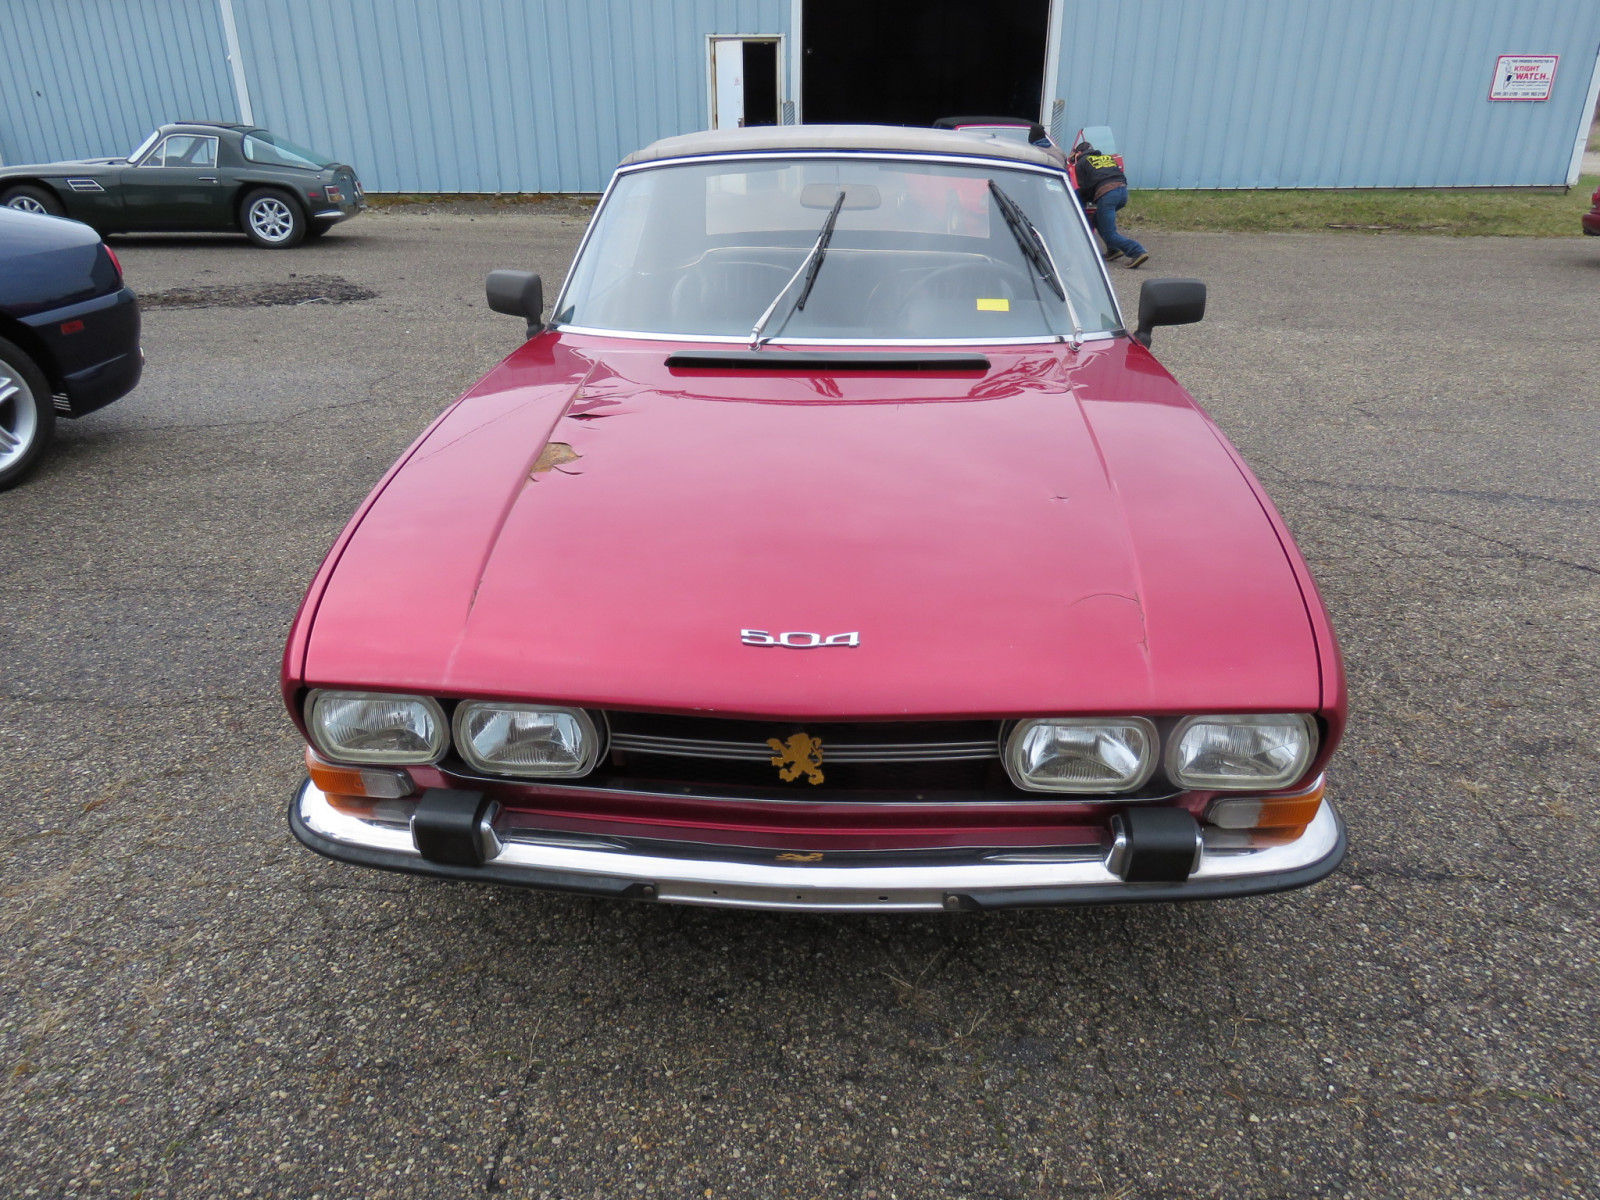 1972 Peugeot 504 Fuel Injected Convertible - Image 2